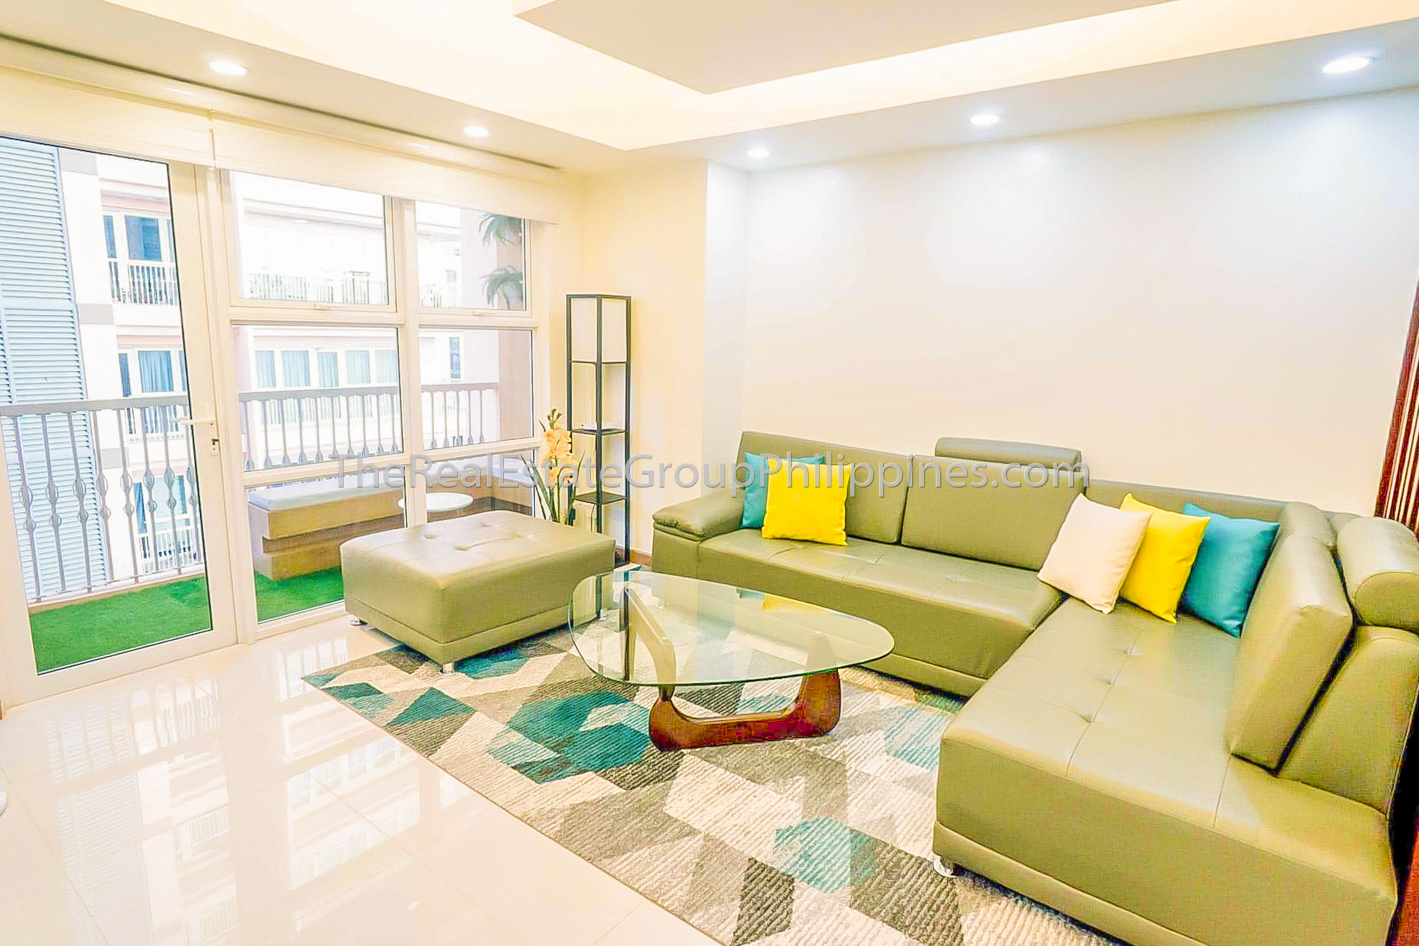 2BR Condo For Sale Venice Residences McKinley Hill Taguig (8 of 10)